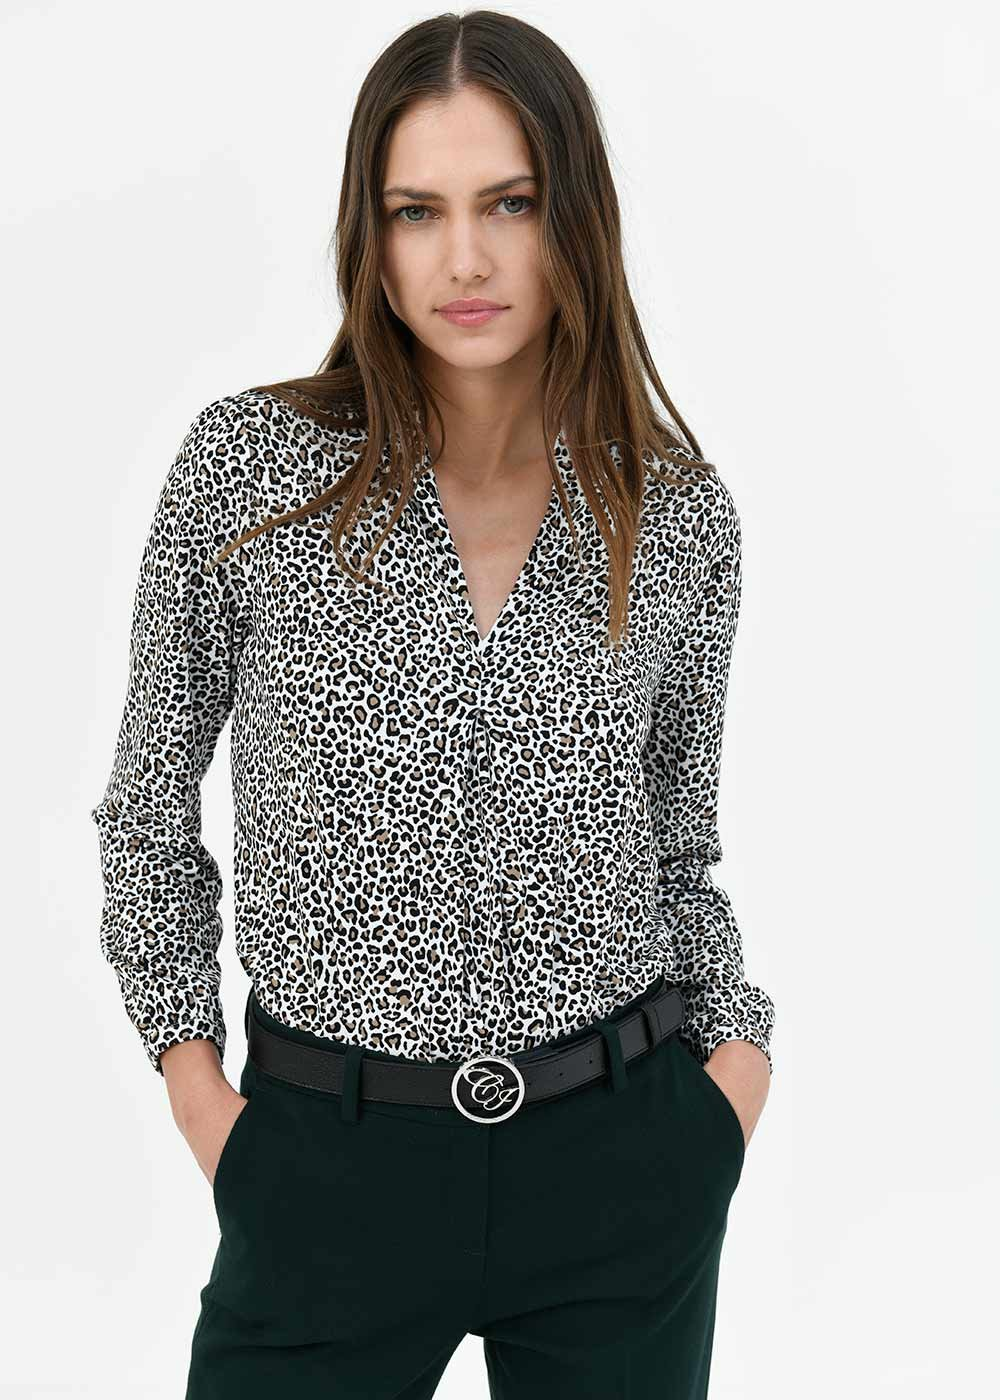 Stefanie t-shirt with micro-spotted pattern - White / Doeskin / Fantasia - Woman